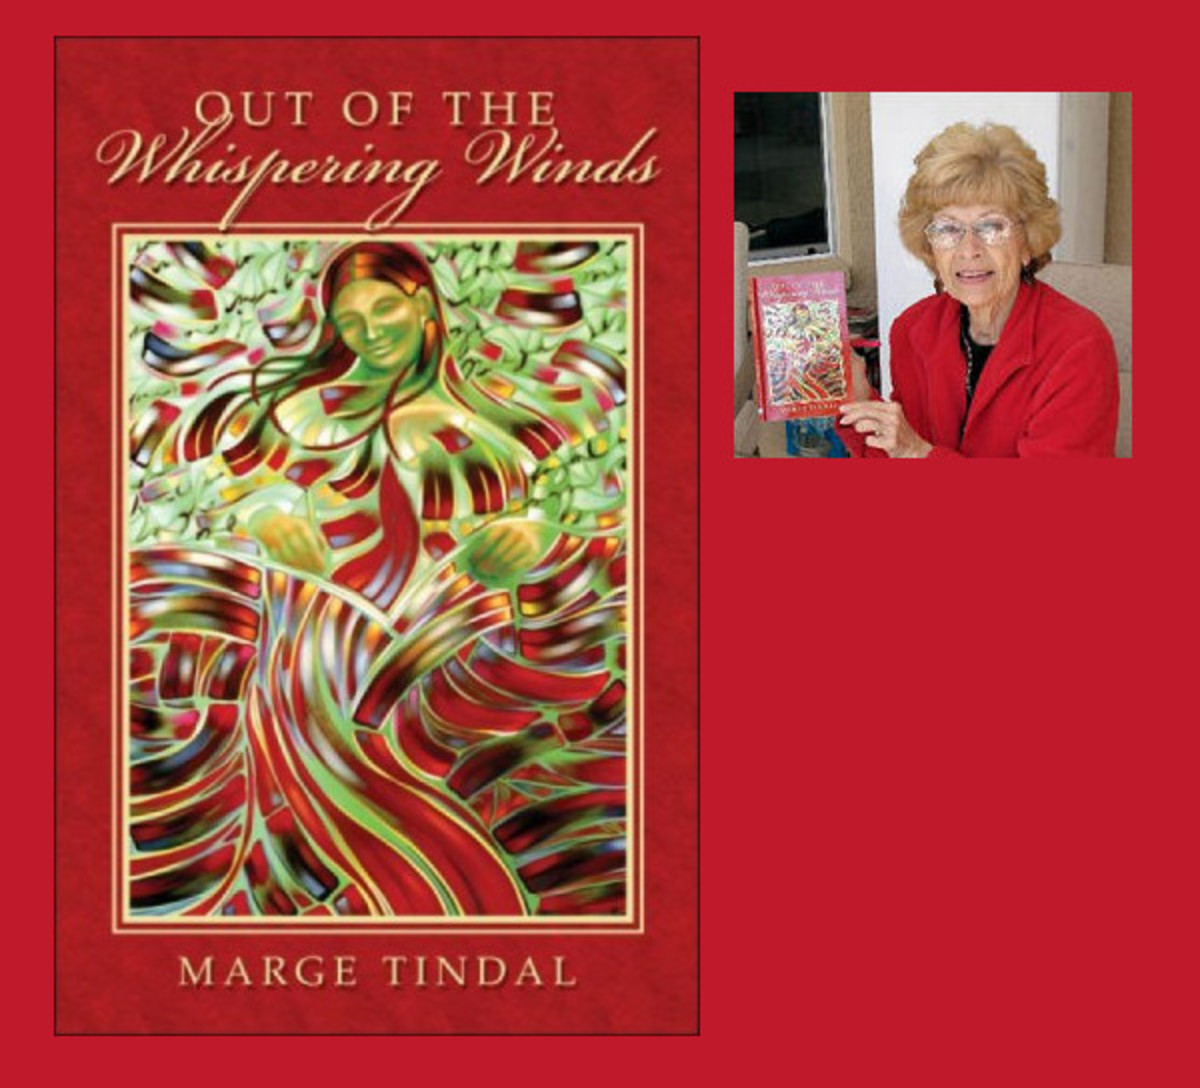 Marge Tindall at a book signing session.